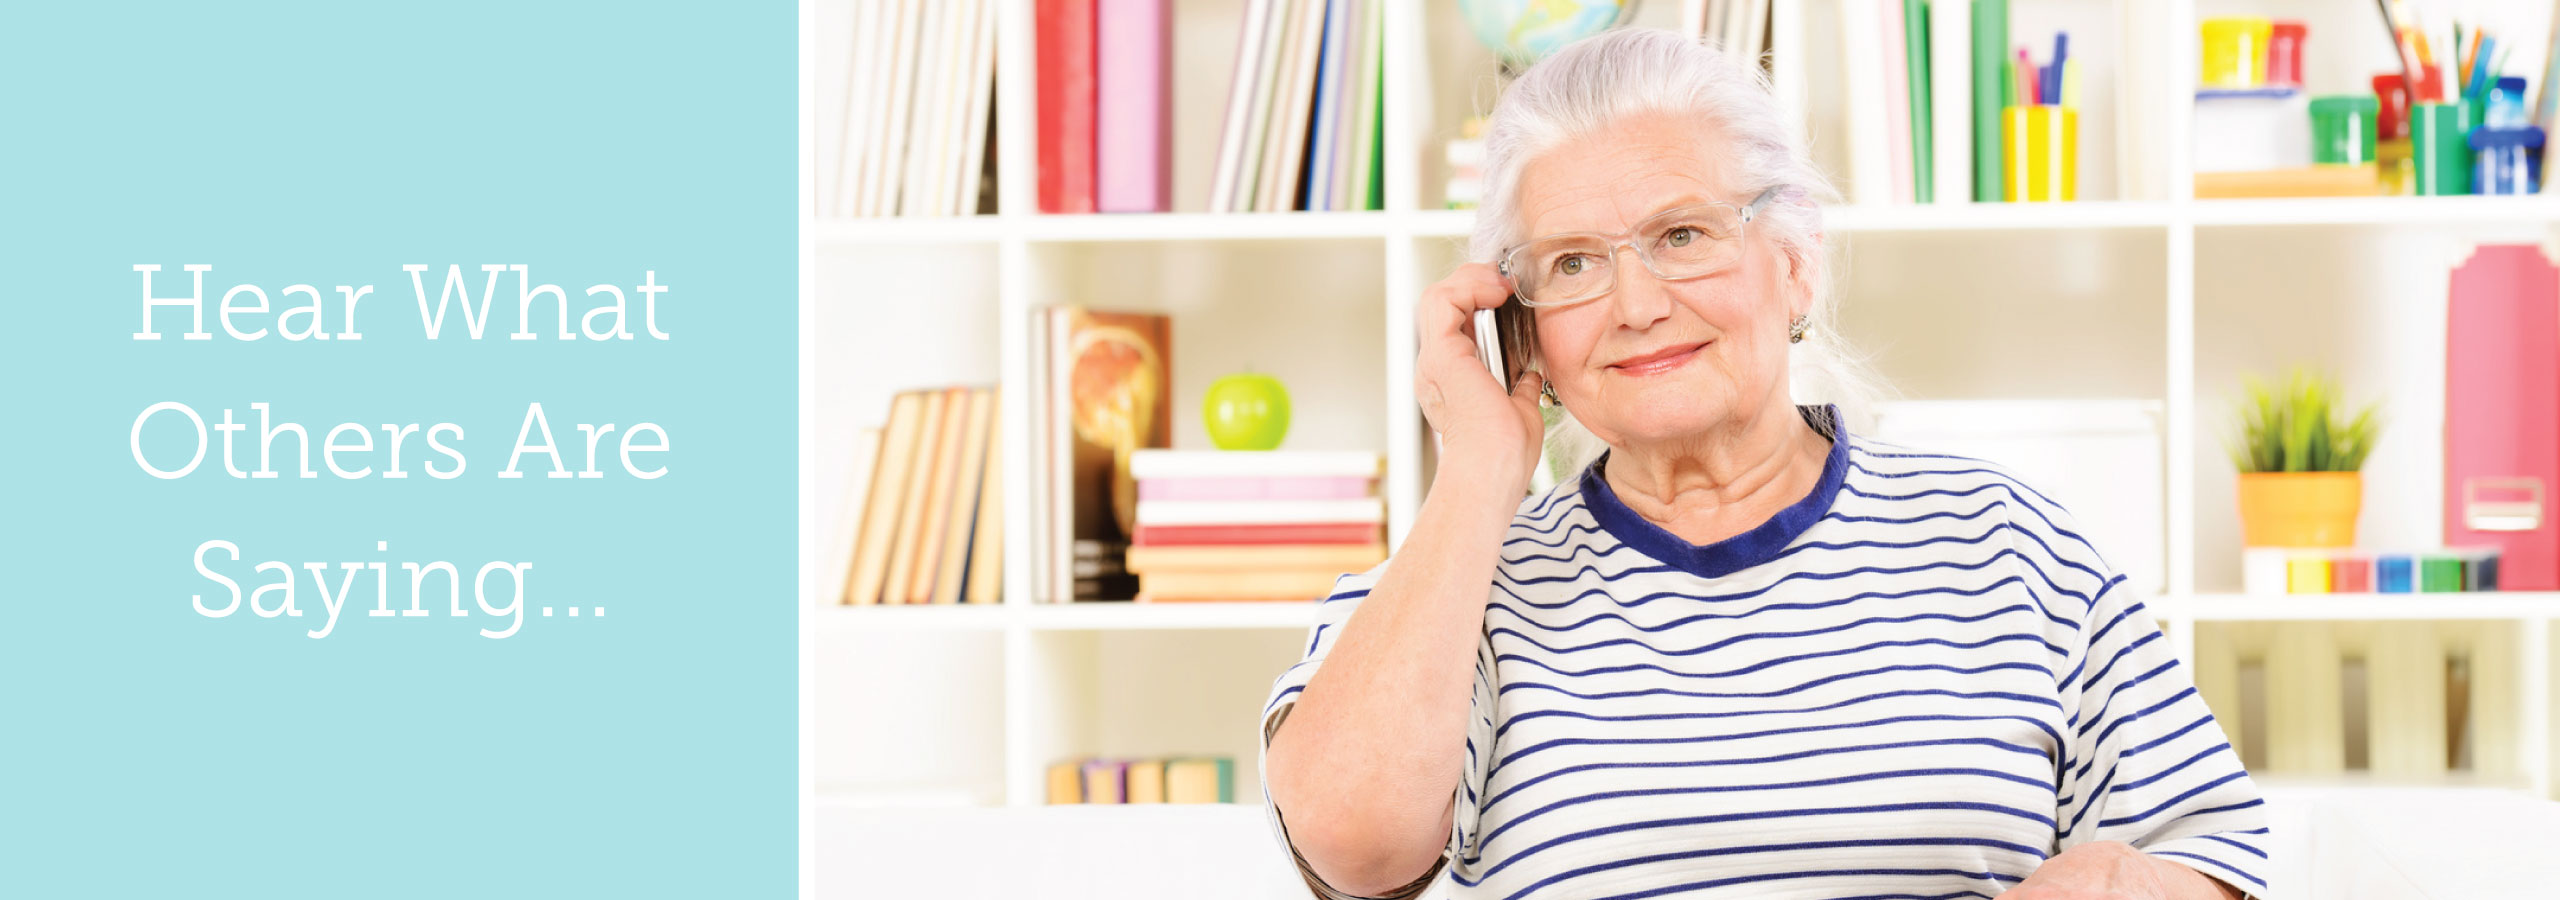 Hear What Others Are Saying about Friendly Caregiver Seniors Care